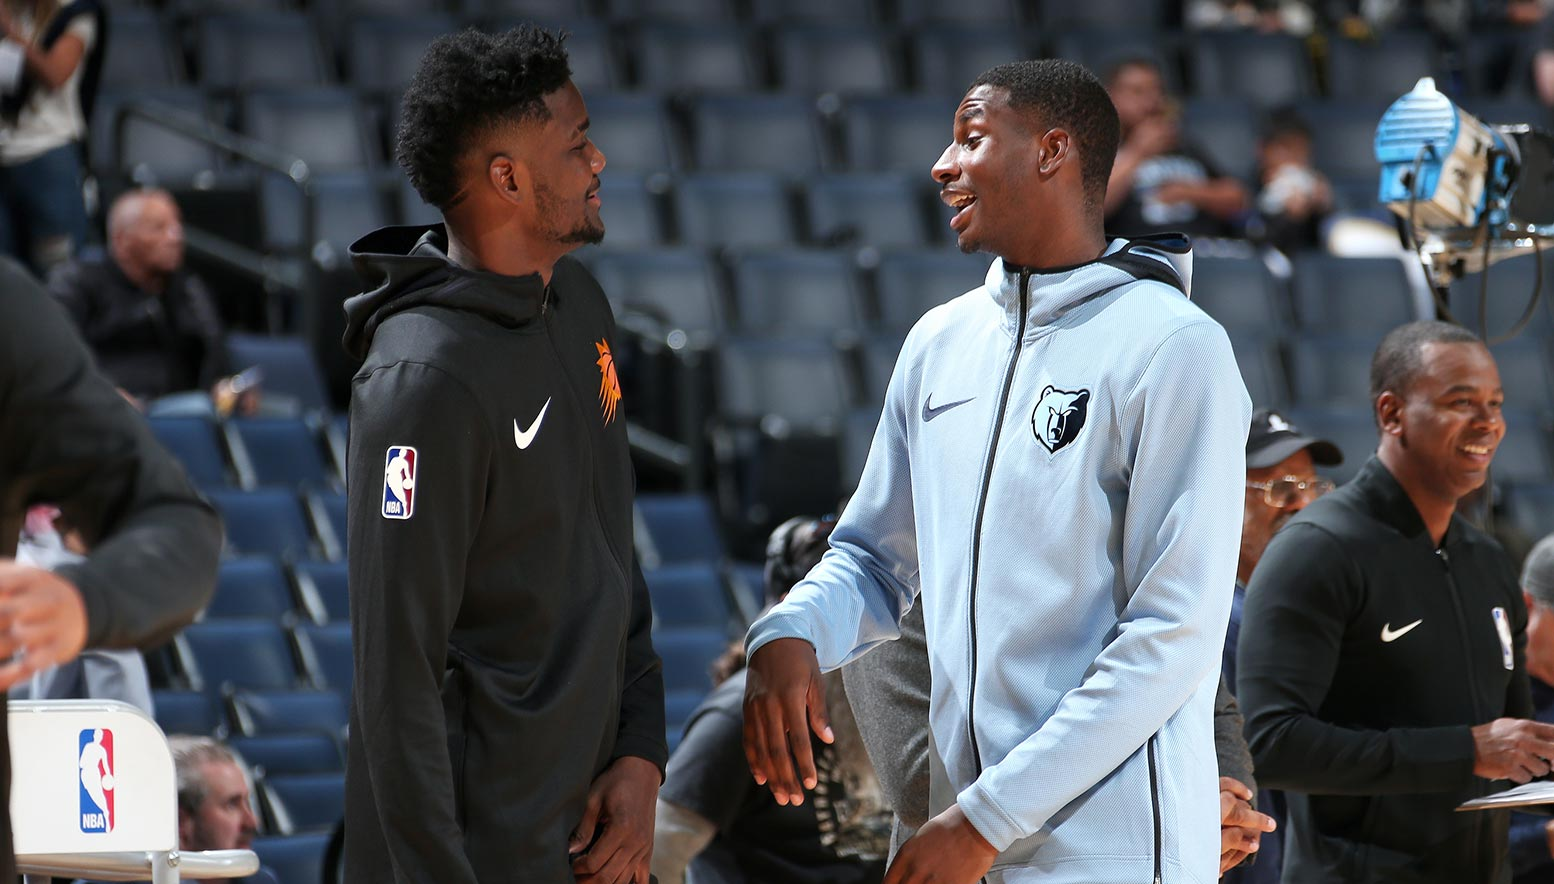 Deandre Ayton #22 of the Phoenix Suns and Jaren Jackson Jr. #13 of the Memphis Grizzlies talk before the game